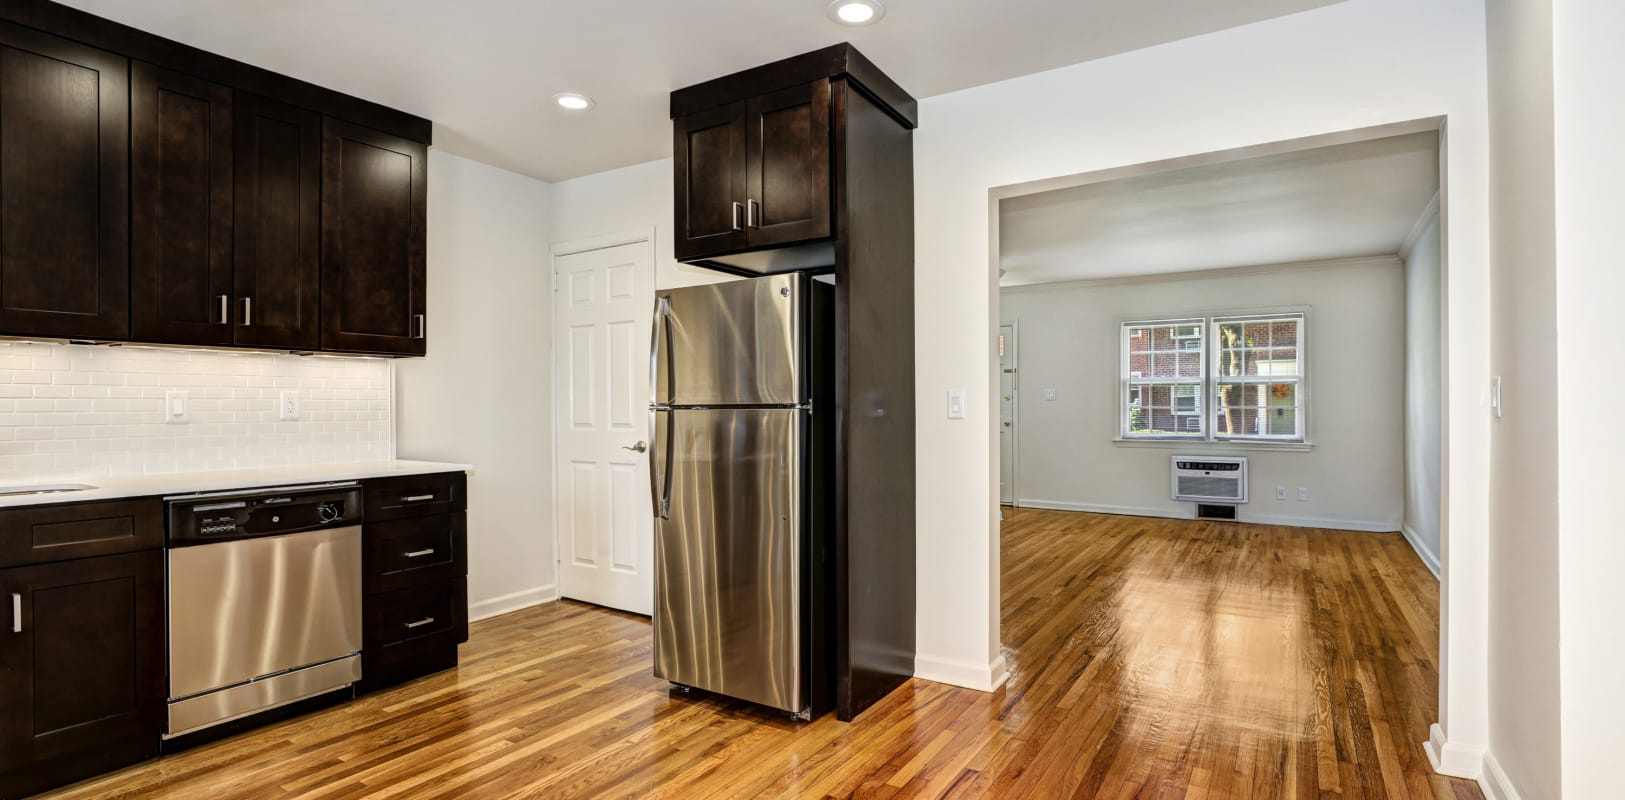 Kitchen with stainless-steel appliances at General Wayne Townhomes and Ridgedale Gardens in Madison, New Jersey